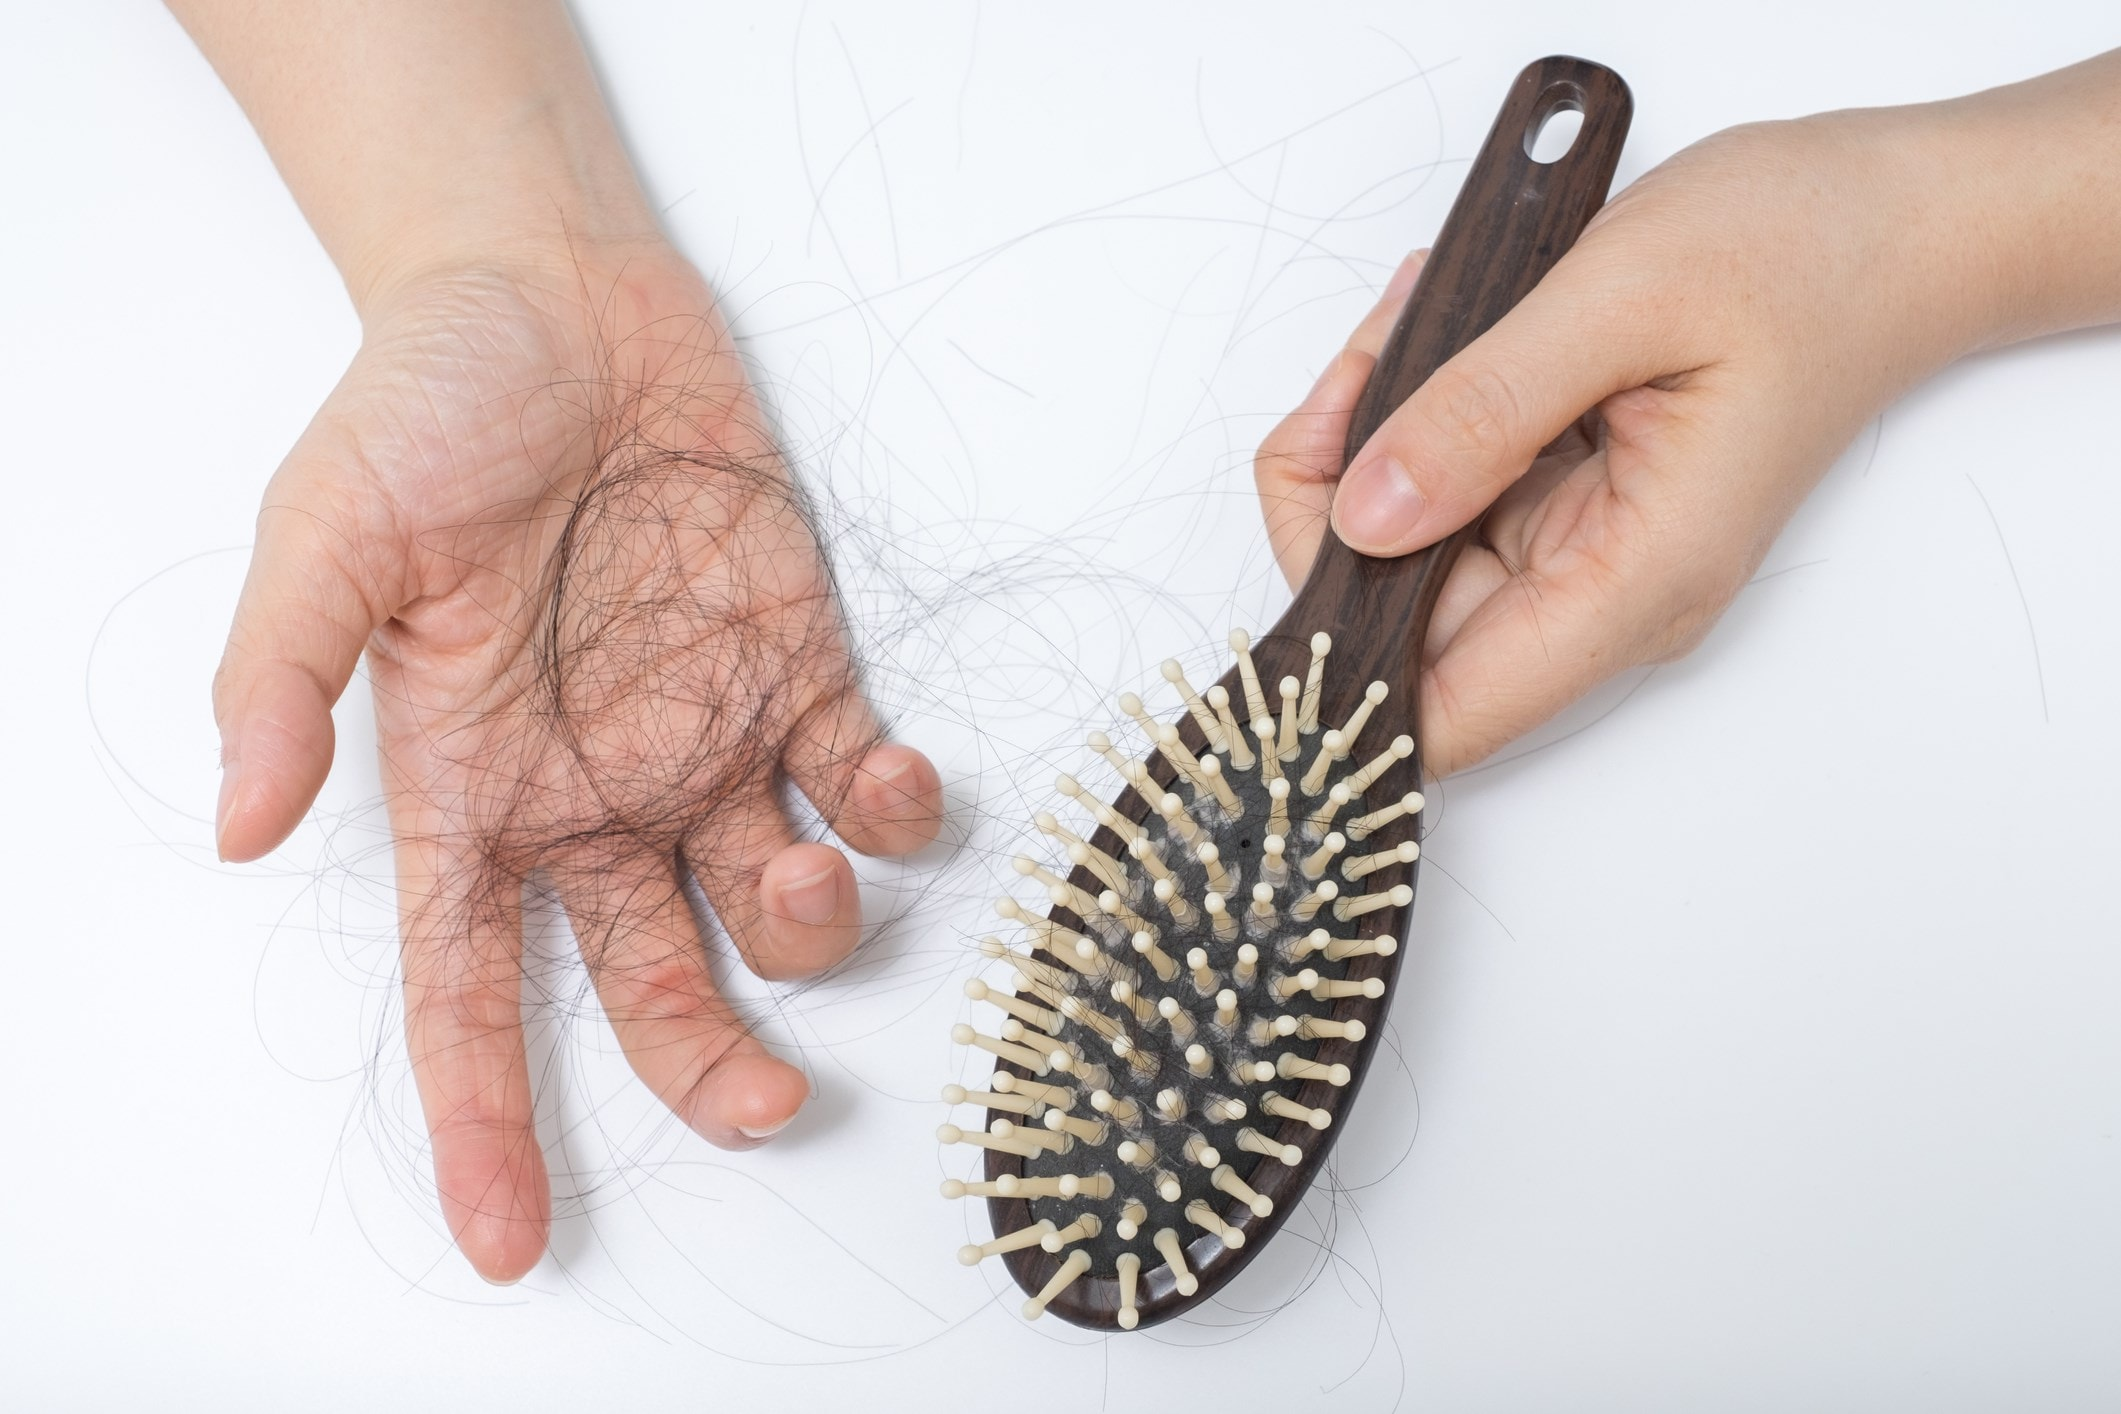 hand holding strands of hair